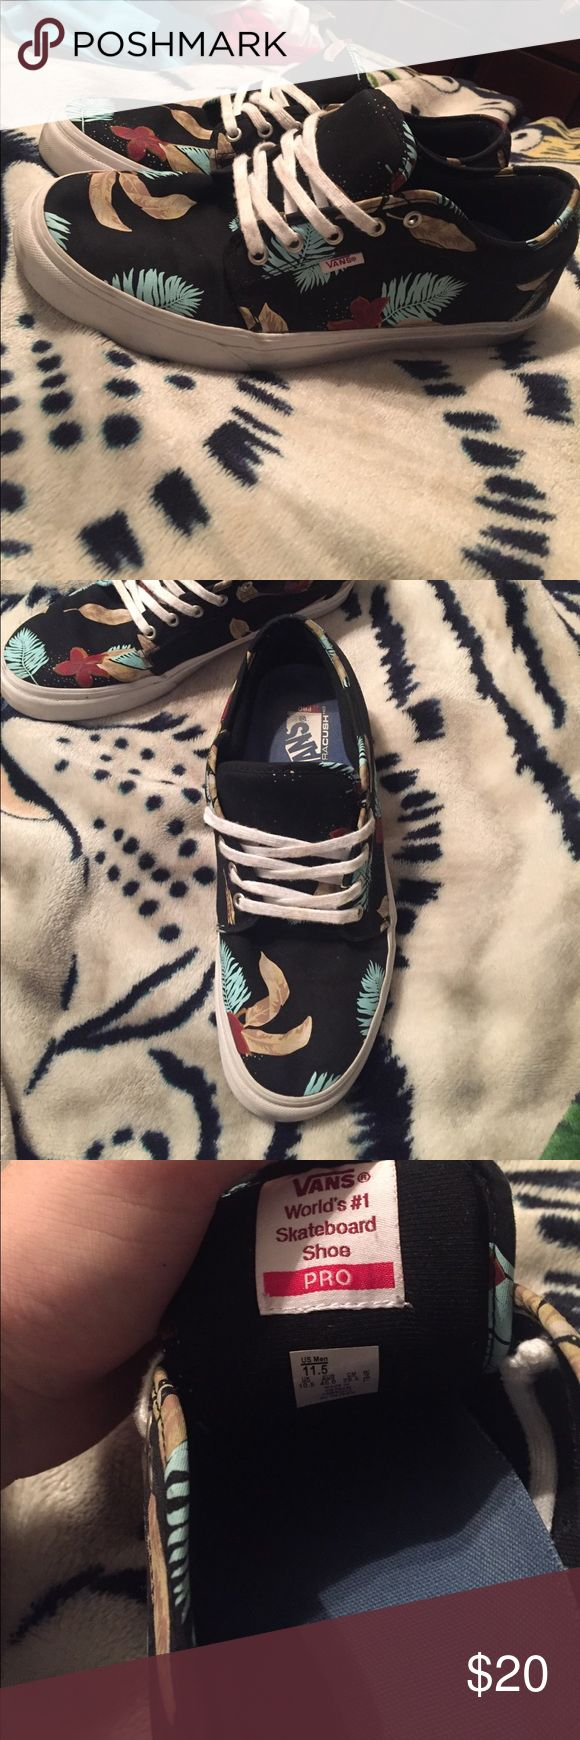 Vans Chukka Low Hawiian Black Size 11.5 I've had these for almost 2 years and I've worn them maybe twice. Immaculate condition and laced up well. Vans Shoes Sneakers